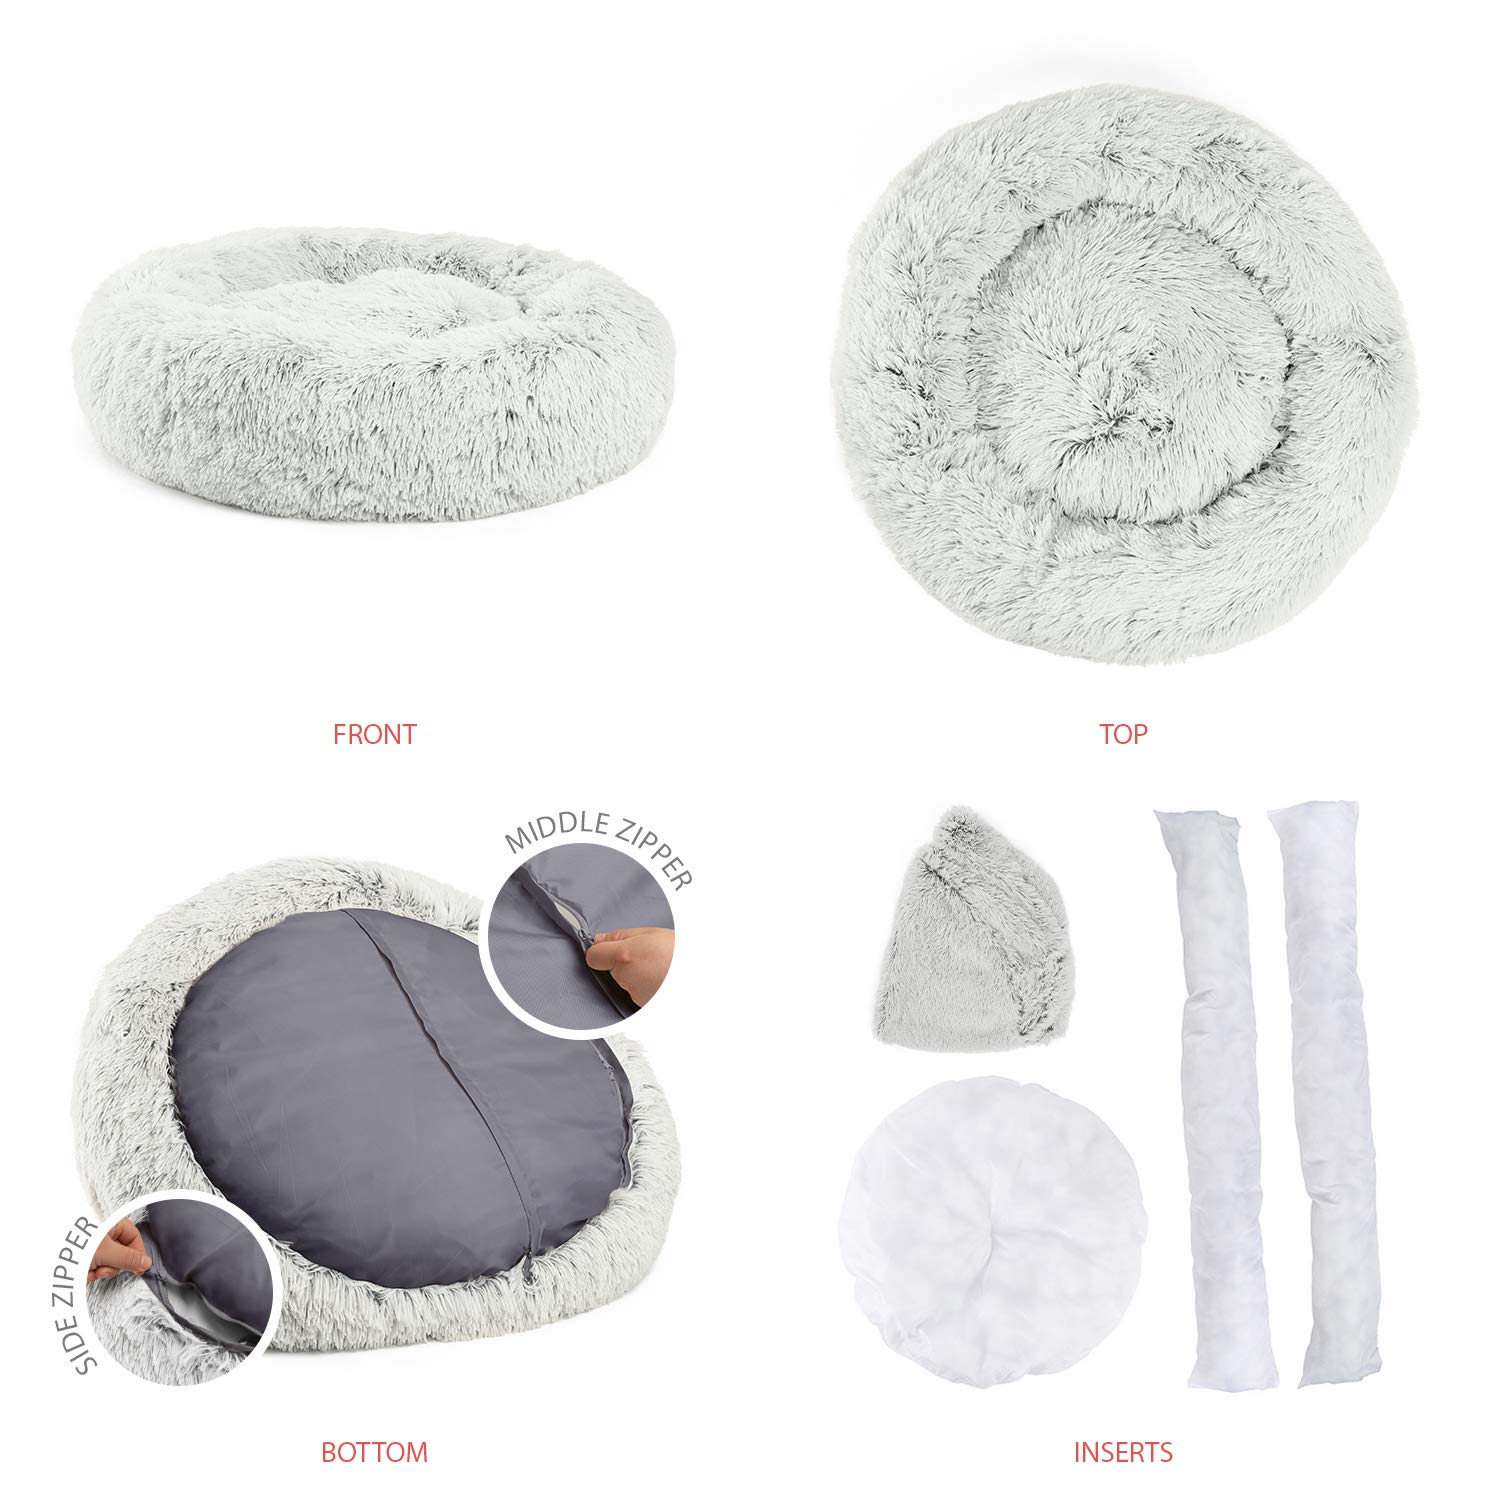 Best Friends by Sheri Luxury Shag Fur Donut Cuddler (30x30 Zippered, Frost) – Medium Round Dog & Cat Cushion Bed, Removable Shell, Warming, Cozy - Prime, Machine Washable - Medium Pets Up to 45lbs by Best Friends by Sheri (Image #3)